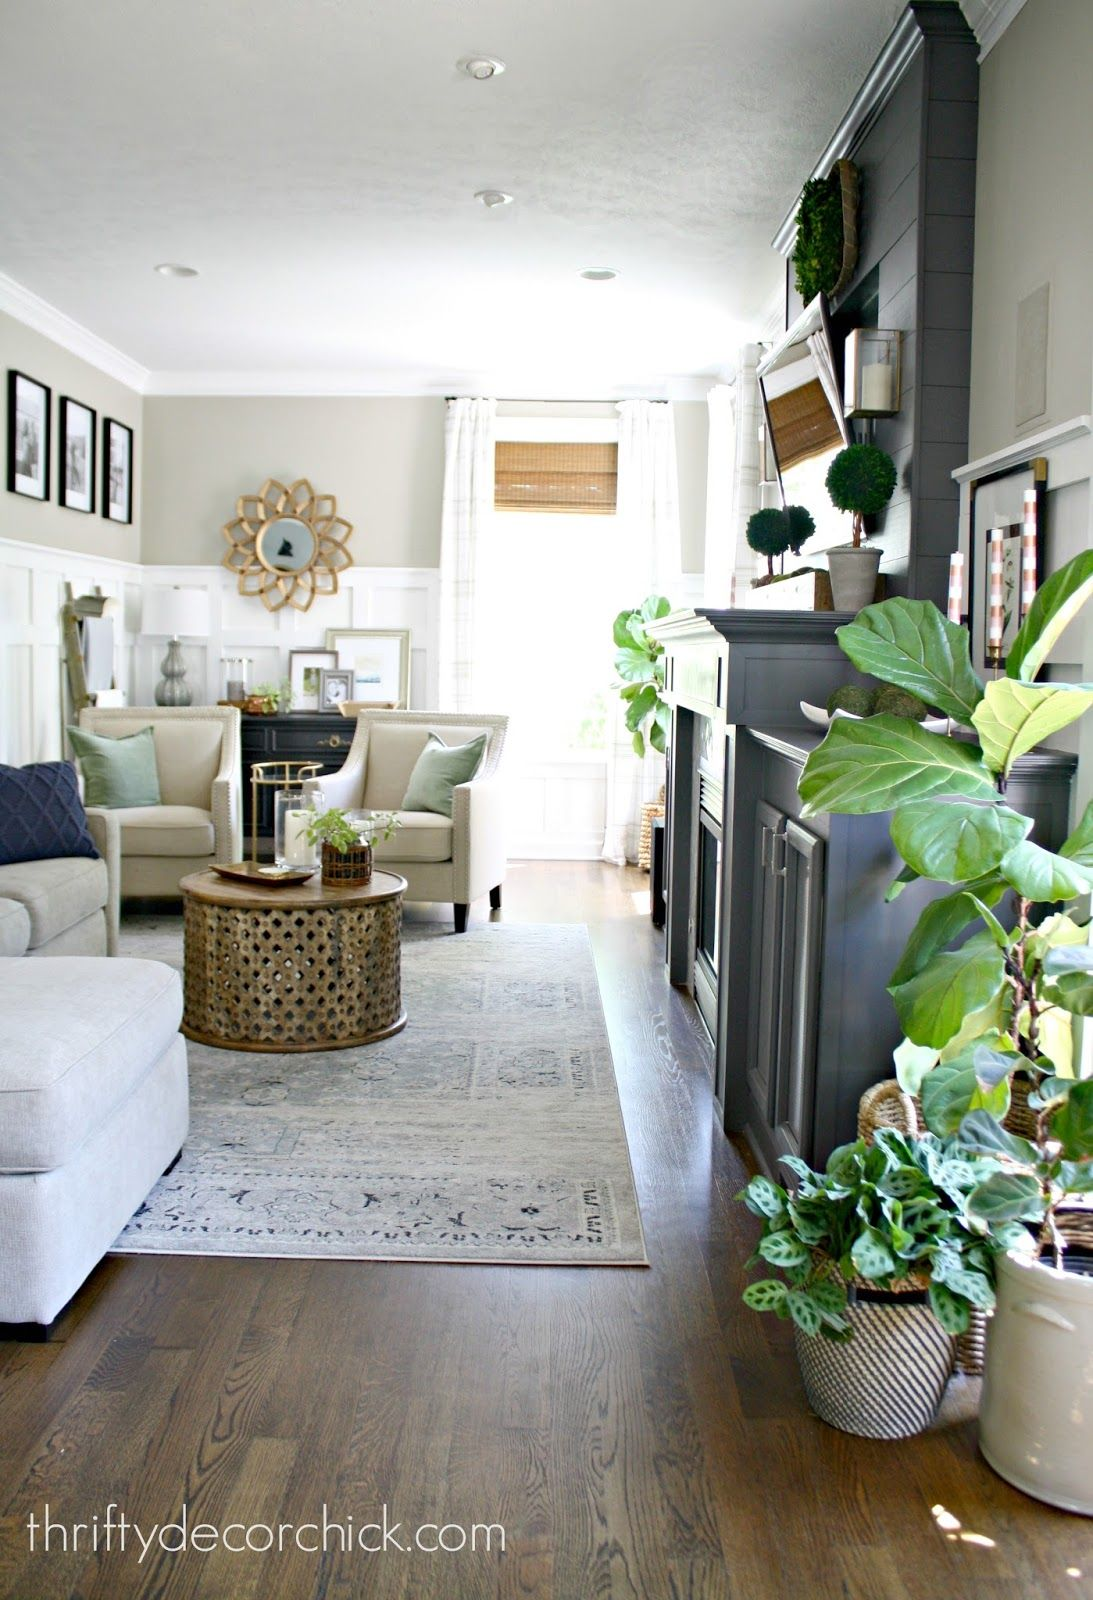 Our Home | Trim work, Household and Living rooms